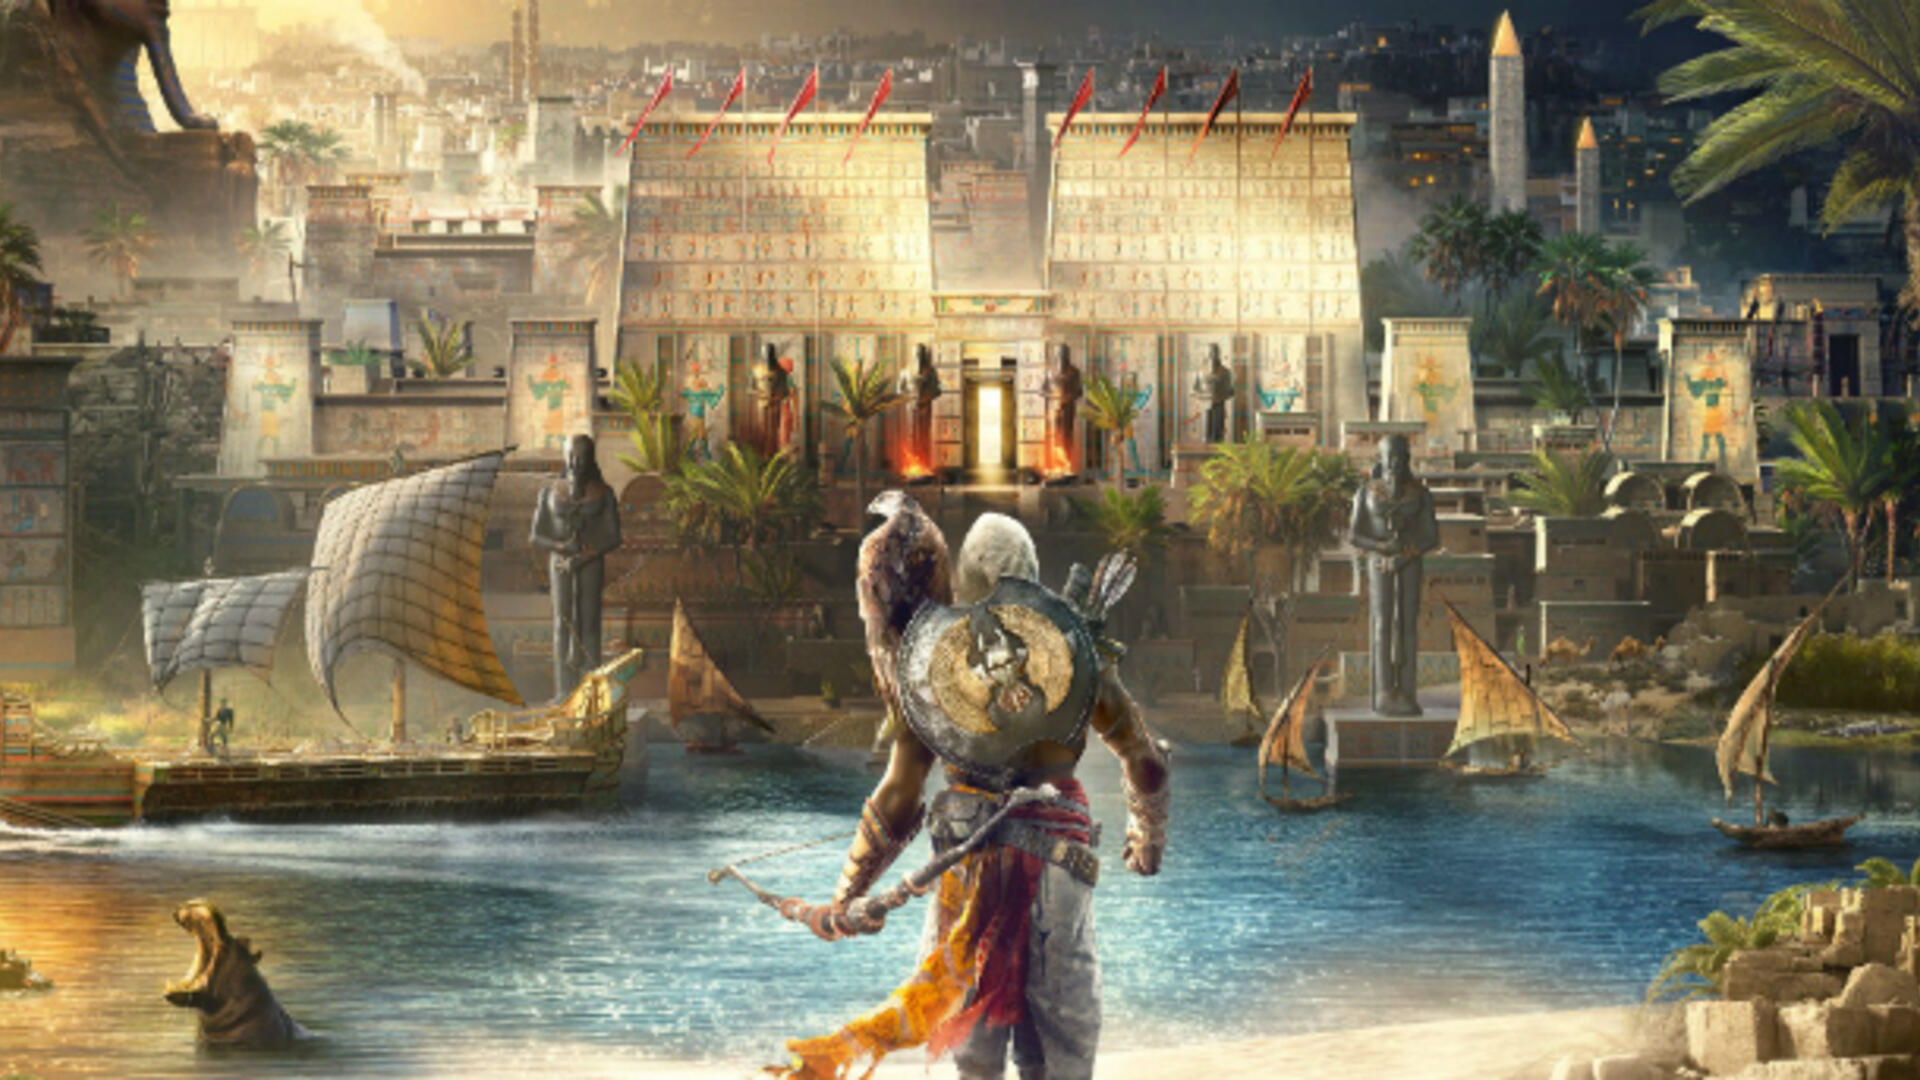 What Are The Best Settings in the Assassin's Creed Franchise